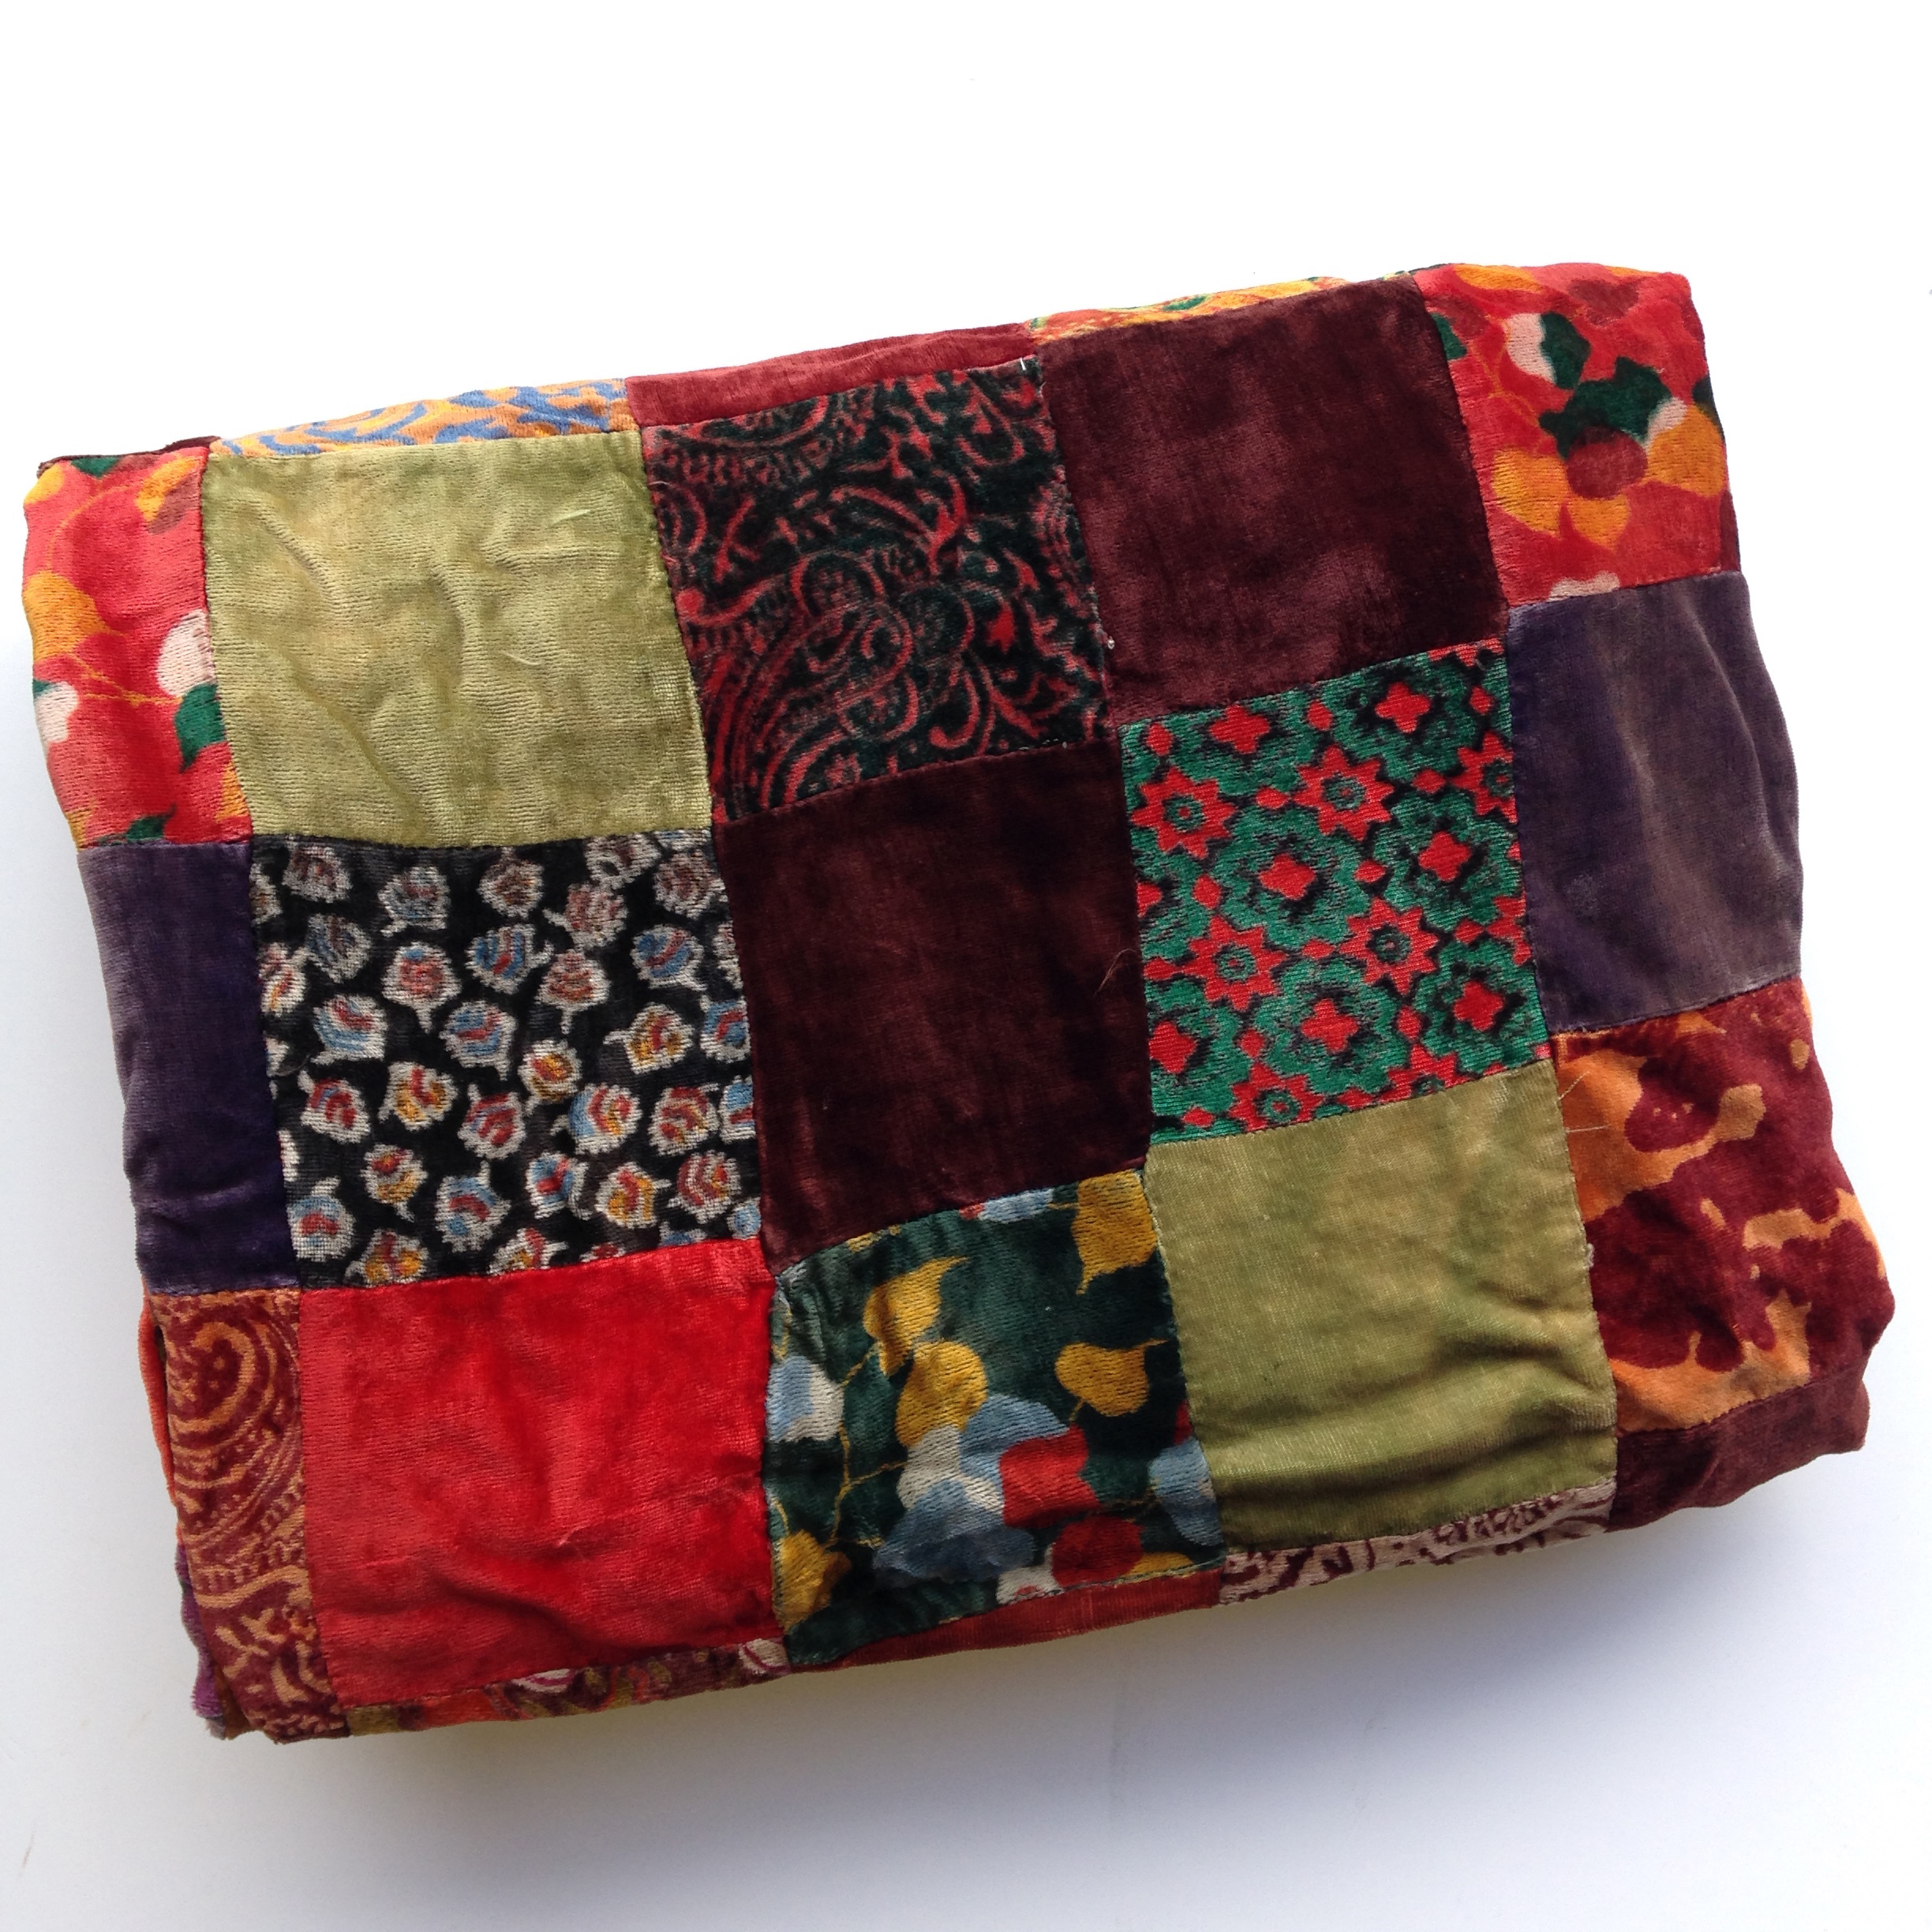 BLA0107, BLANKET (Throw), Velvet Vintage Patchwork $25